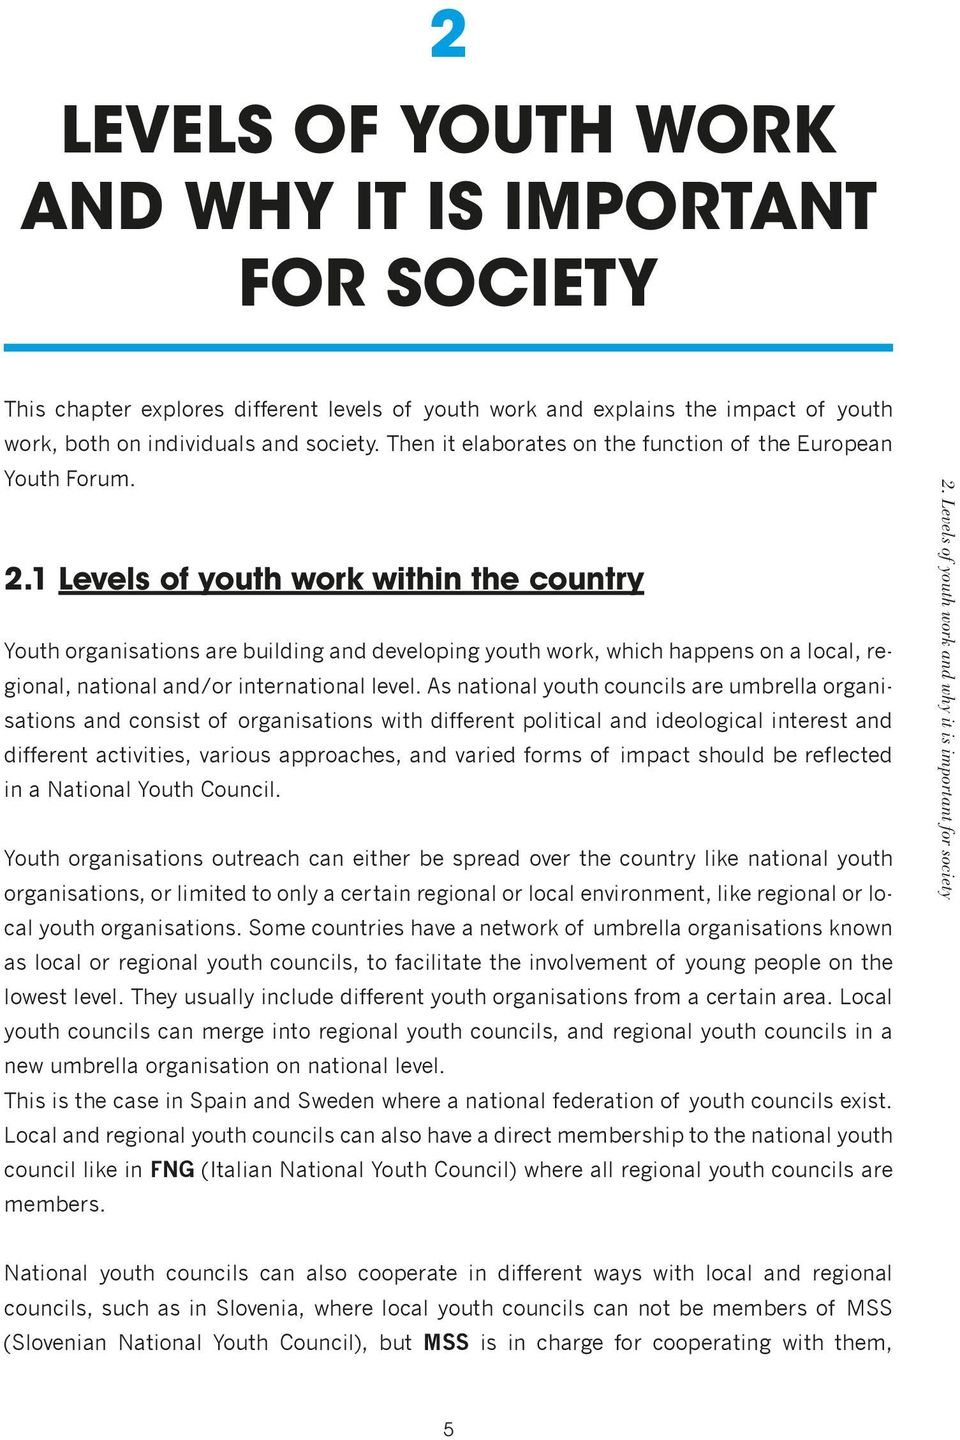 1 Levels of youth work within the country Youth organisations are building and developing youth work, which happens on a local, regional, national and/or international level.